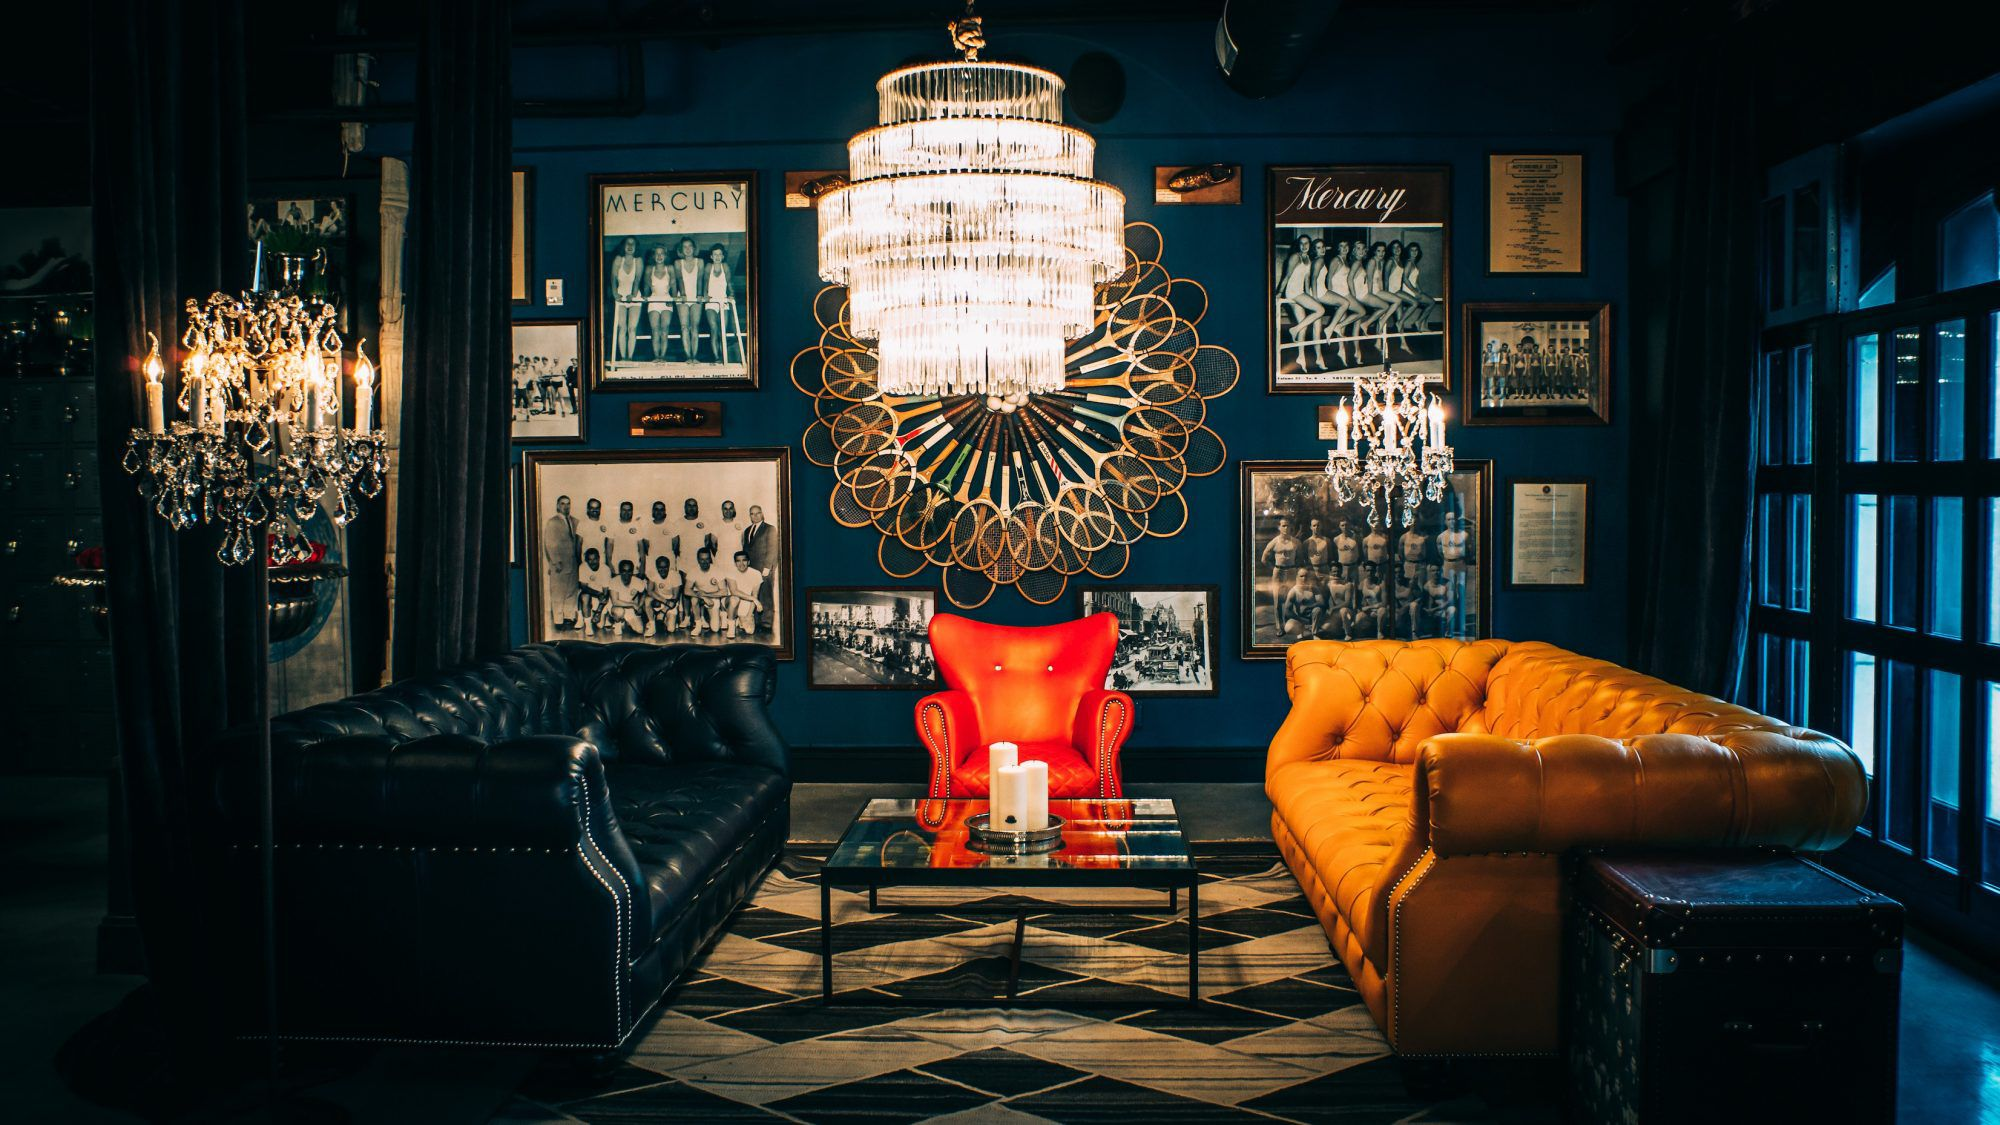 THE BLUE ROOM (LOS ANGELES)